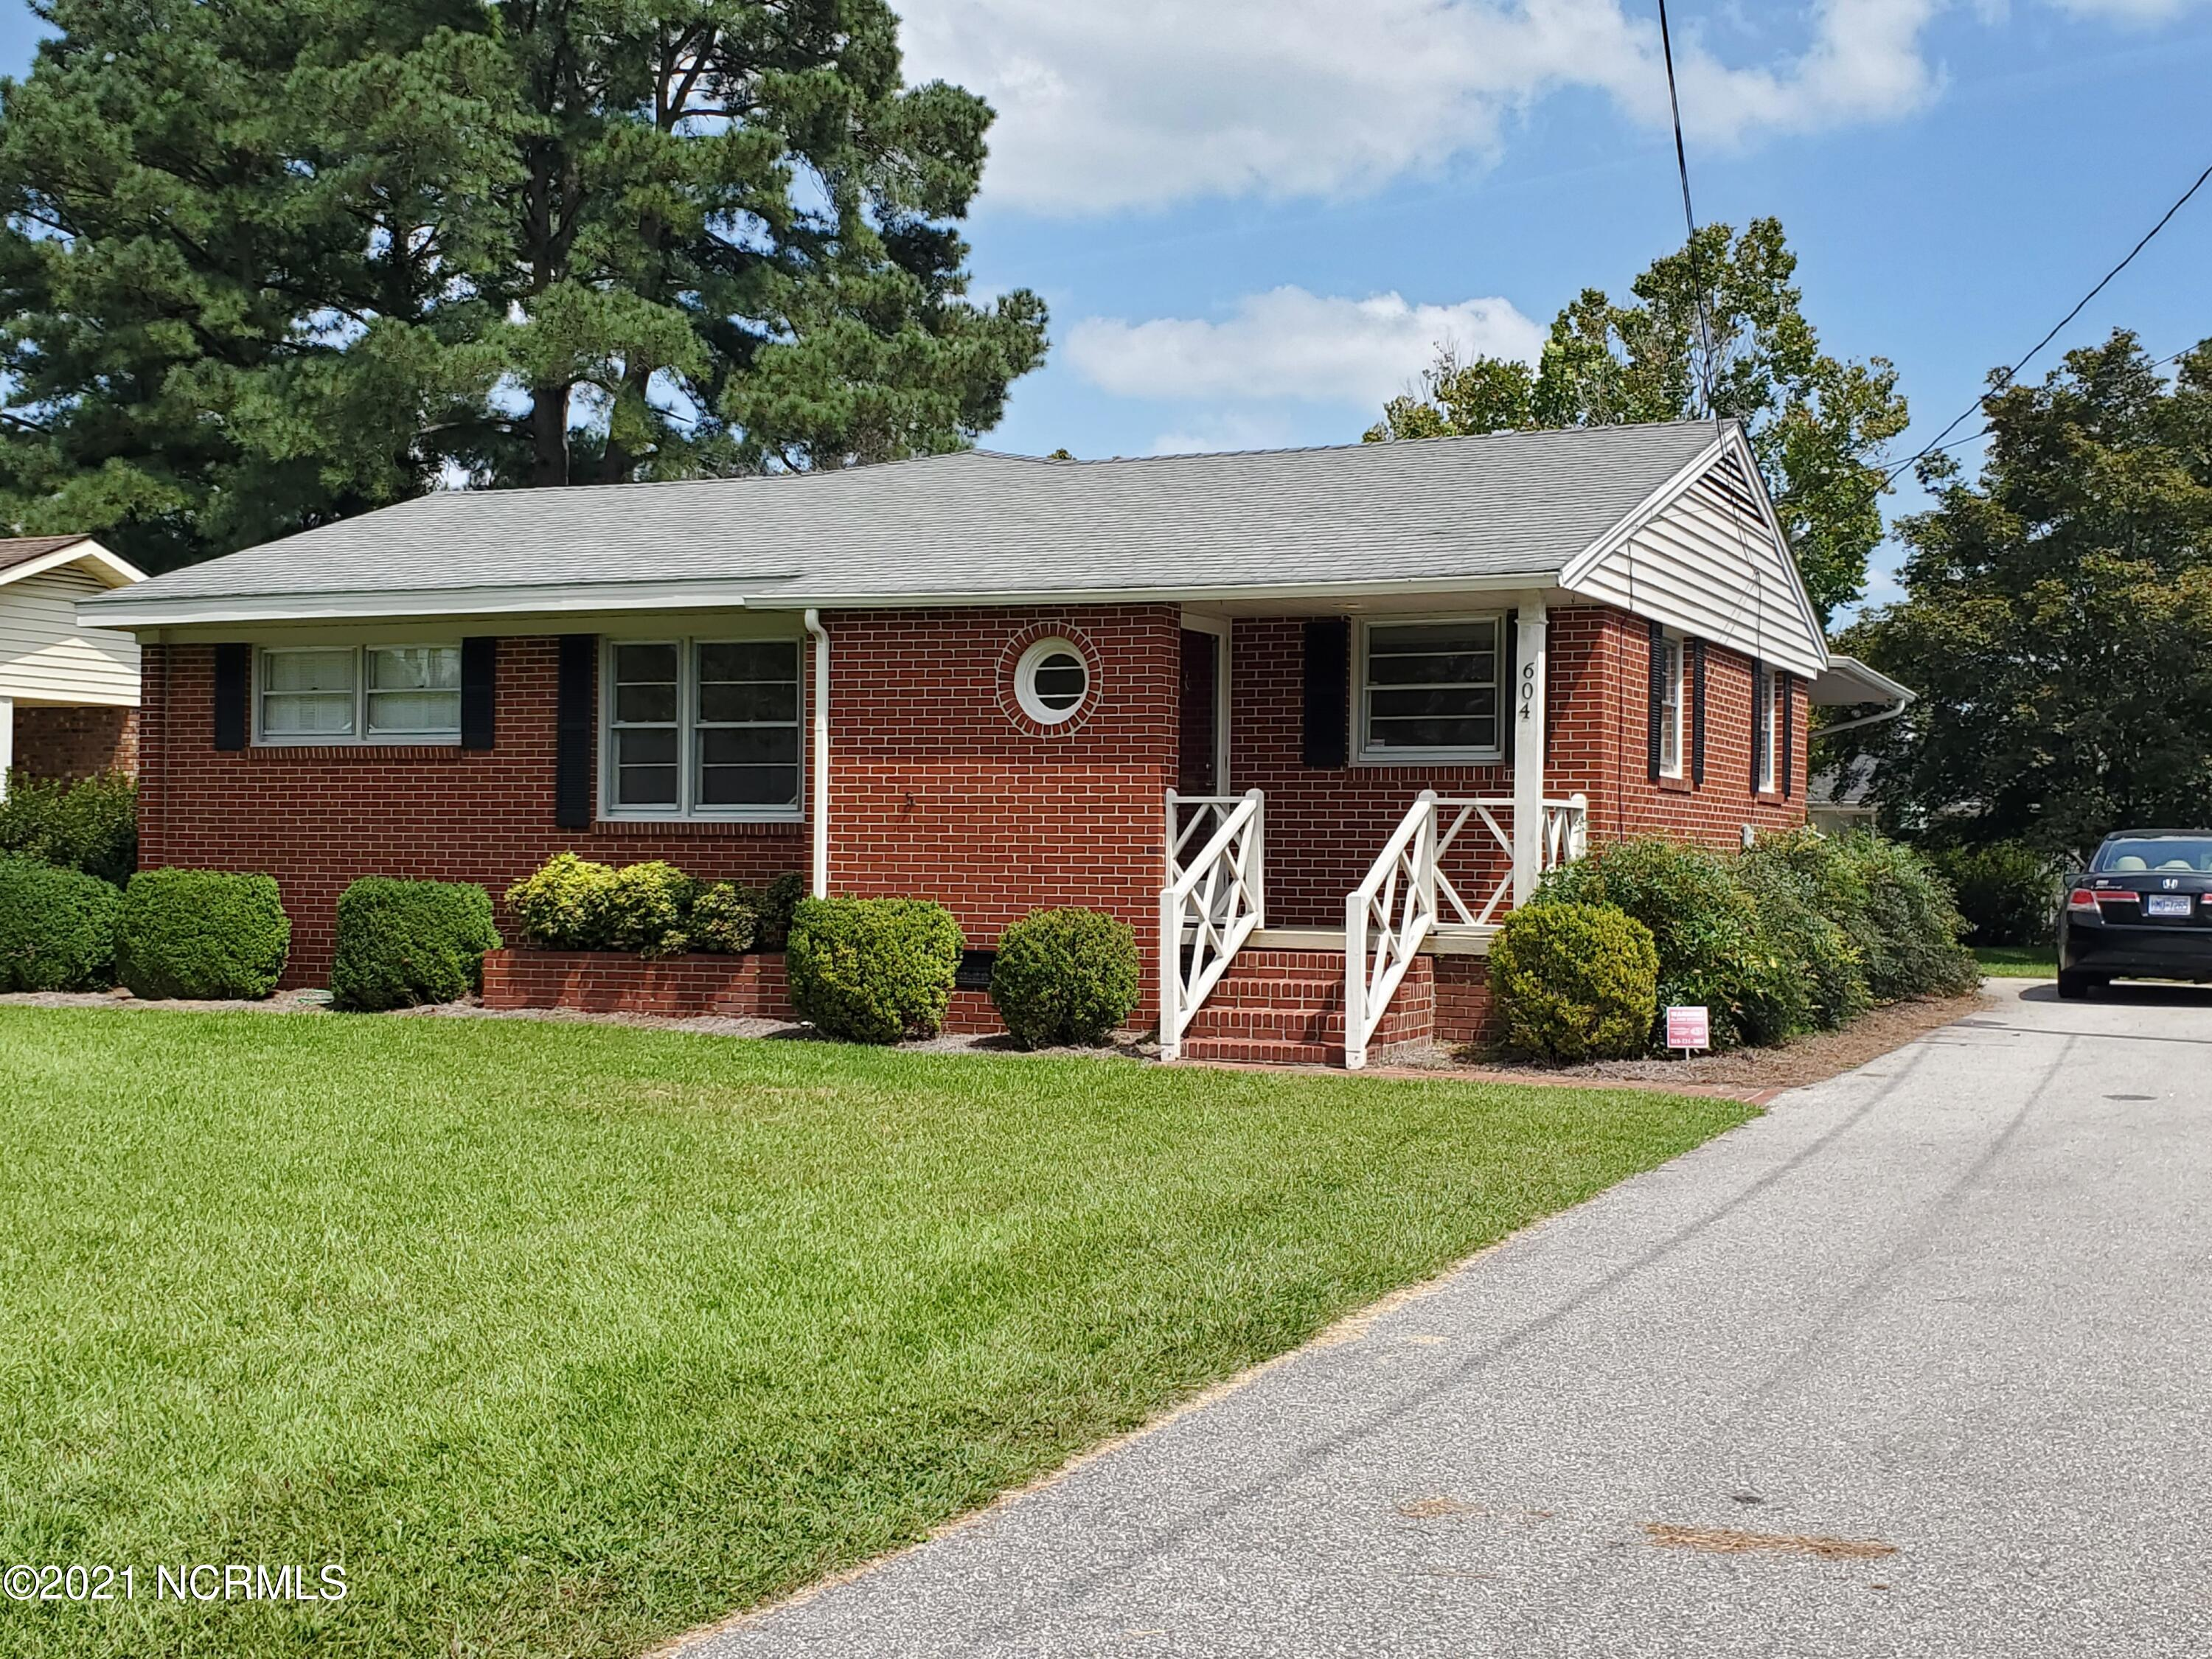 604 Blaney Street, Clinton, North Carolina 28328, 3 Bedrooms Bedrooms, 6 Rooms Rooms,2 BathroomsBathrooms,Single family residence,For sale,Blaney,100281960